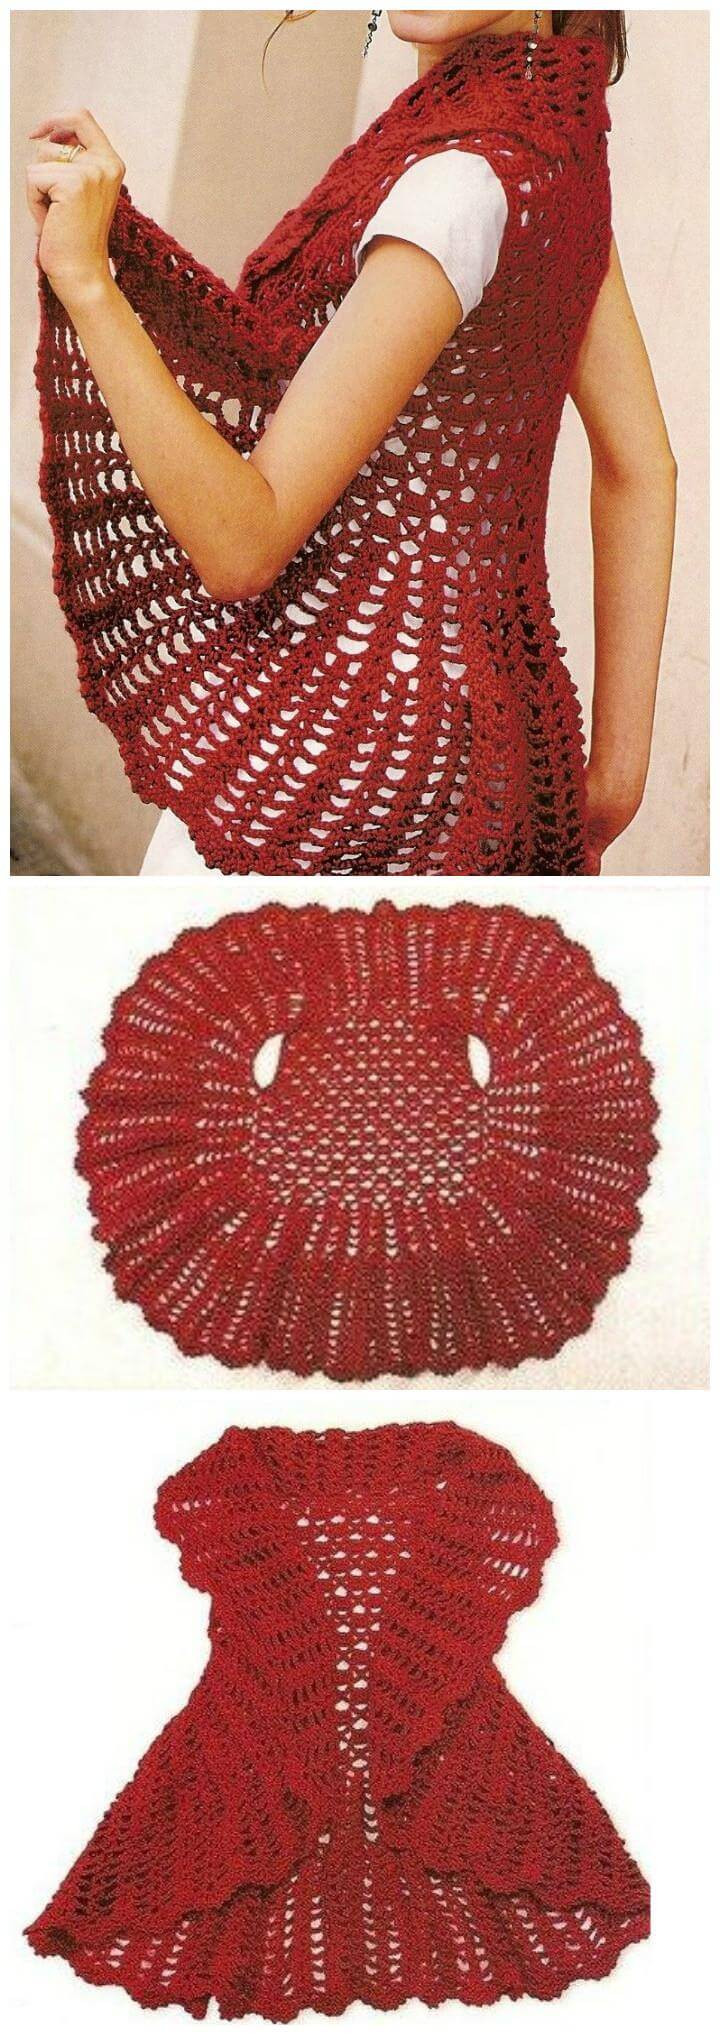 New 12 Free Crochet Patterns for Circular Vest Jacket Circle Vest Crochet Pattern Of Incredible 43 Ideas Circle Vest Crochet Pattern